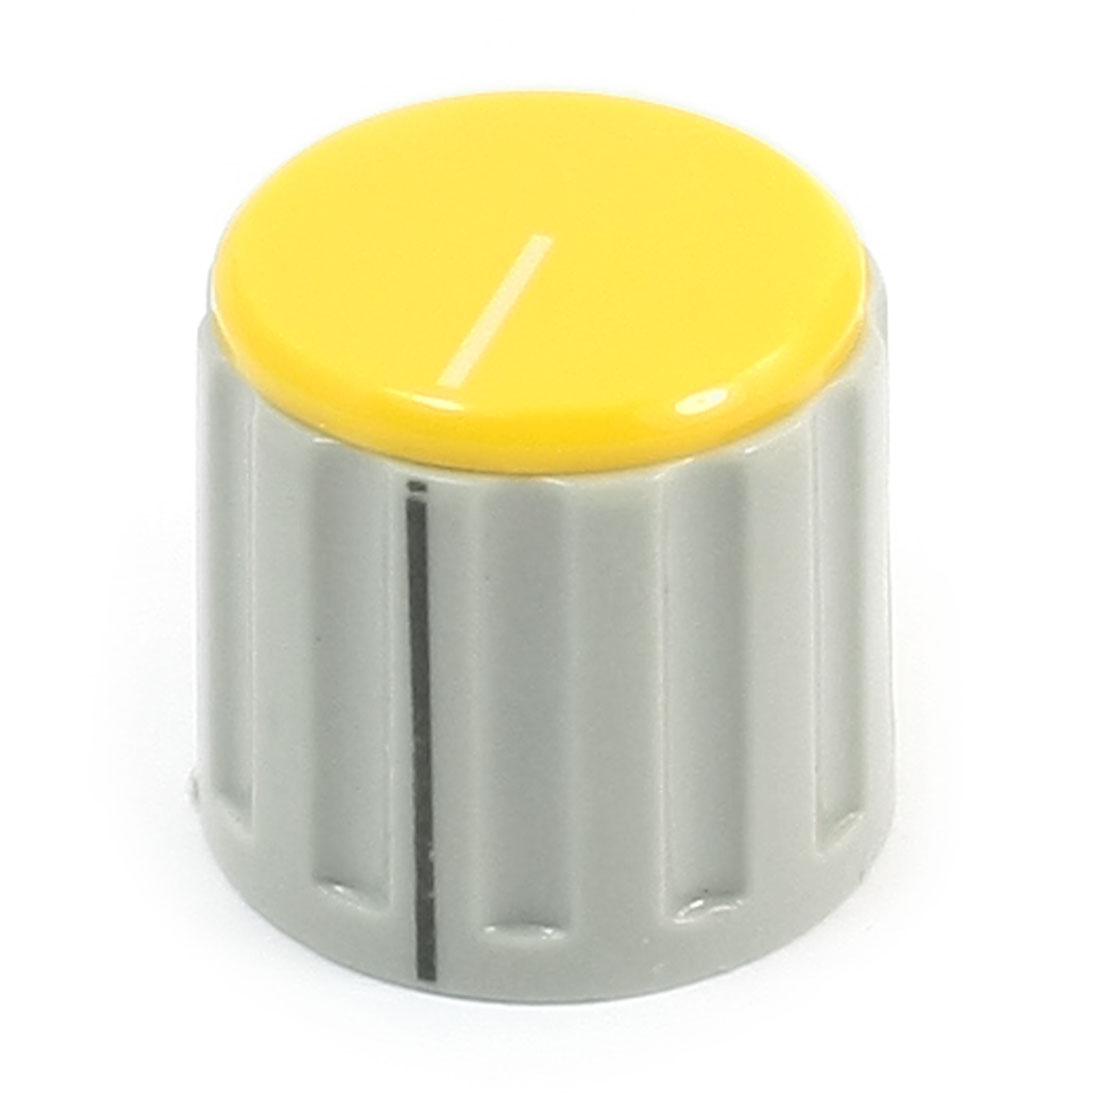 6mm Split Shaft Yellow Cap Stereo Radio Taper Potentiometer Volume Knob KN115